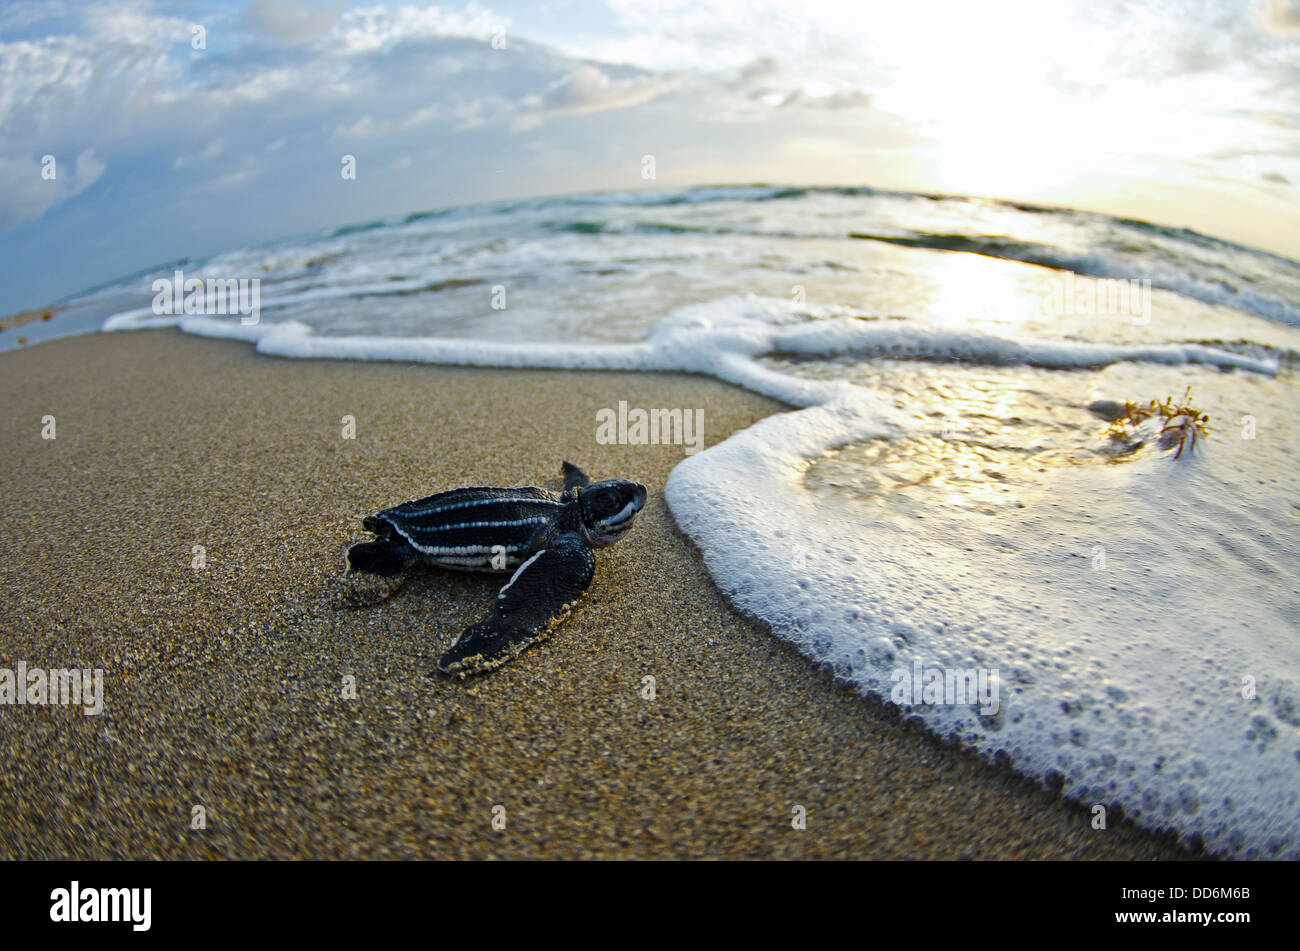 This is a photo of a leatherback sea turtle hatchling making its way out into the ocean one morning on Juno Beach - Stock Image